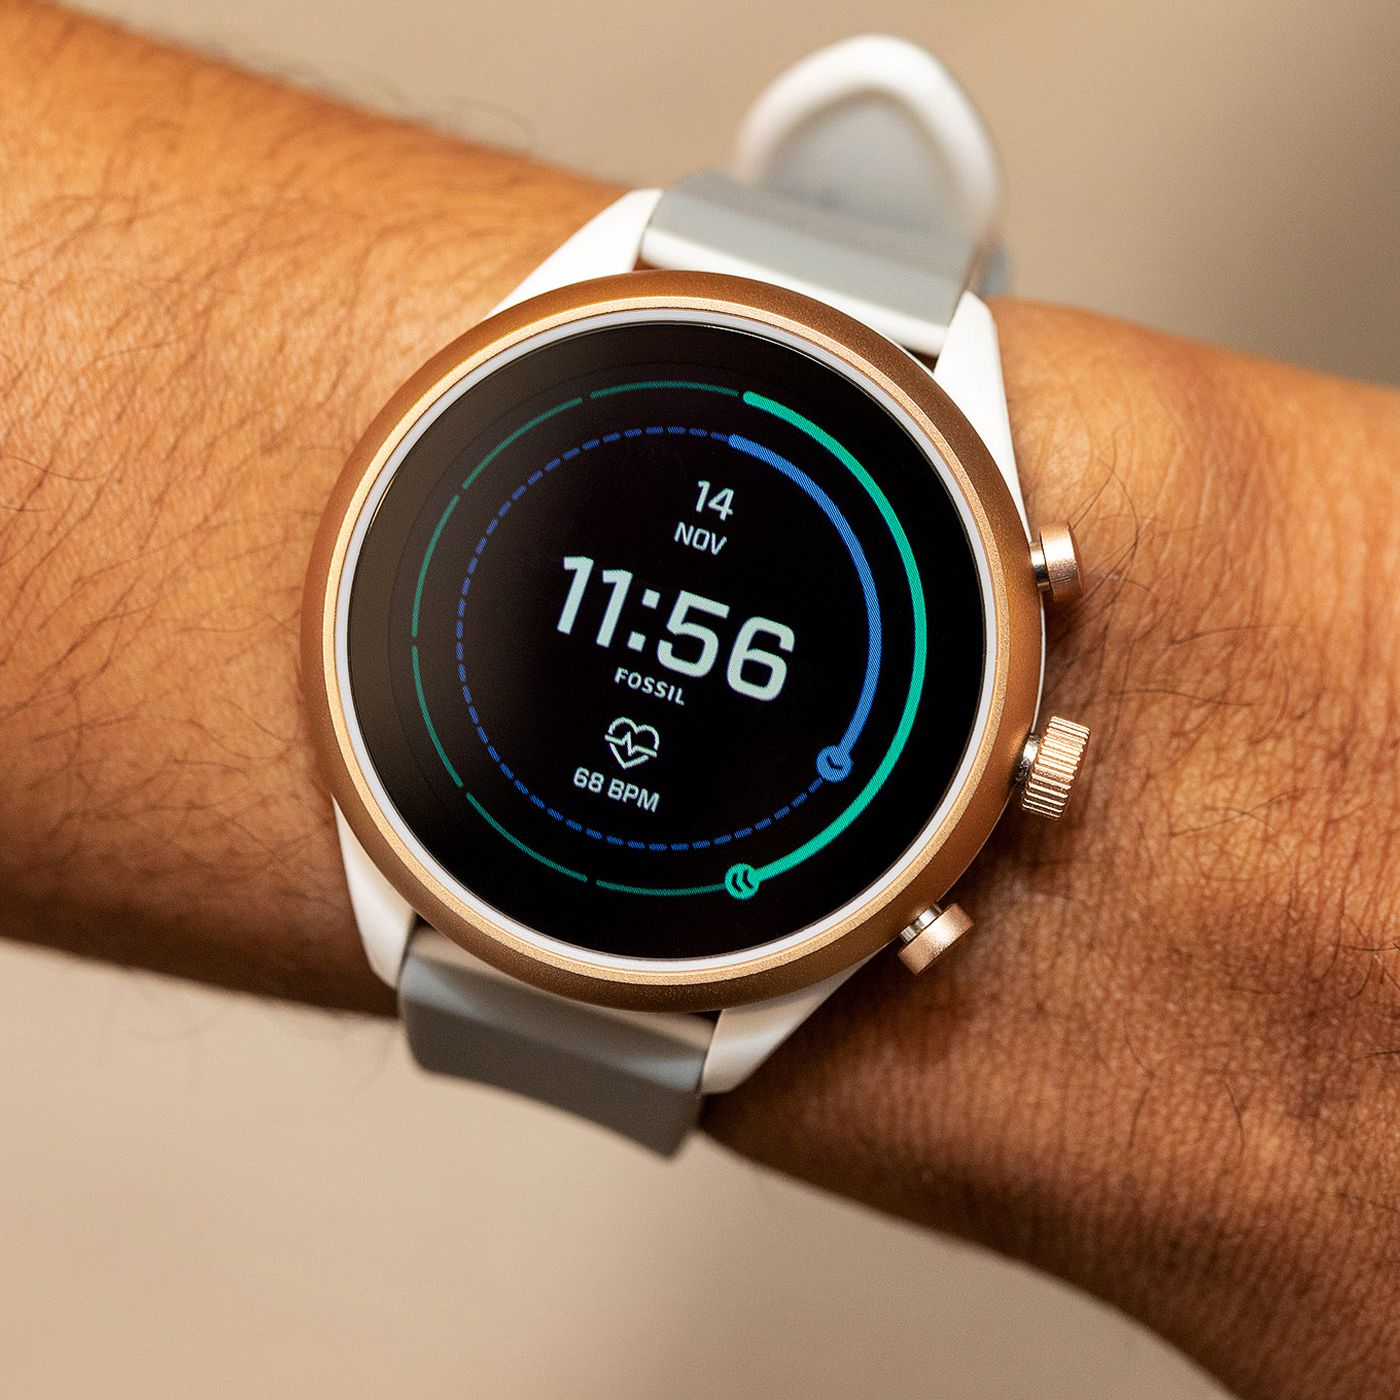 Do You Need A Phone To Use A Smart Watch?